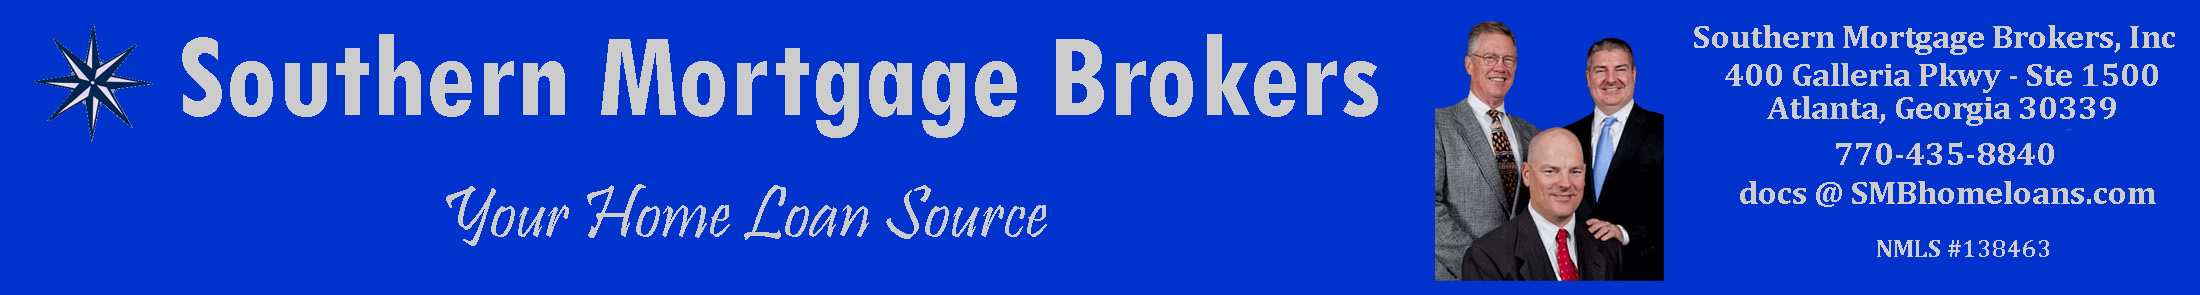 Southern Mortgage Brokers